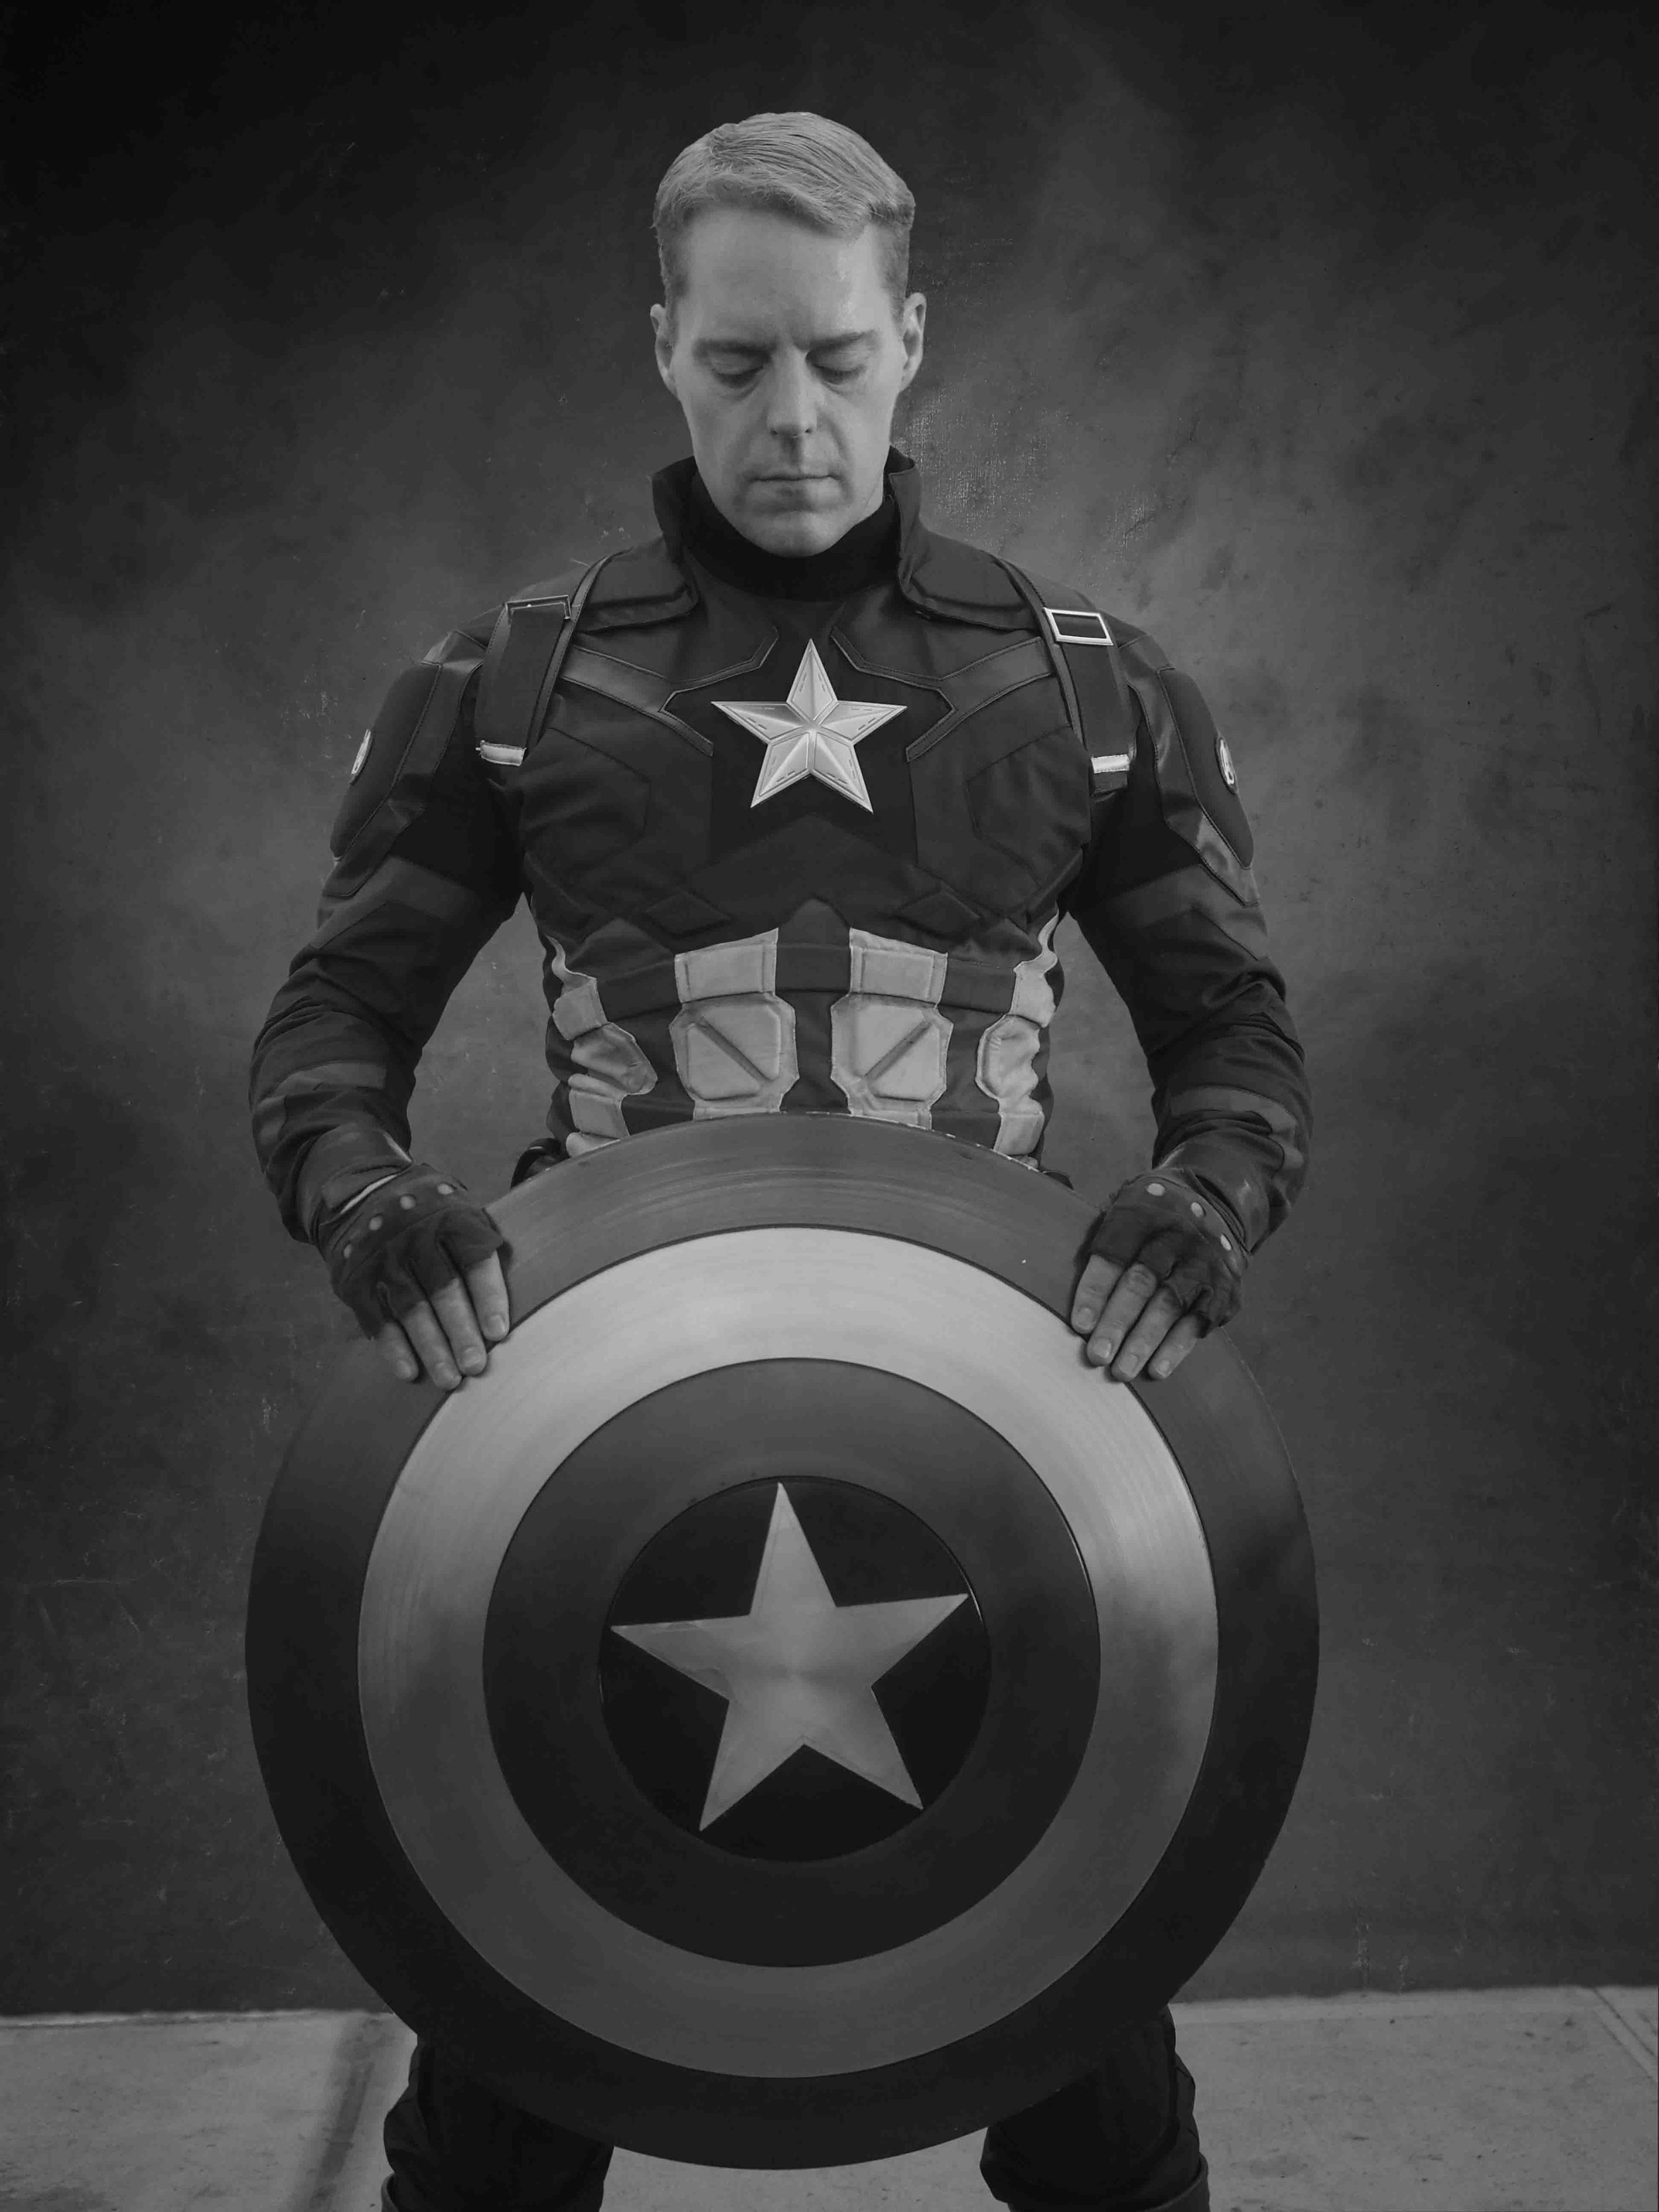 Captain America - Inspired by Captain America & The Justice League by Marvel ComicsCOSPLAY BY | Vorian - Founder & Chairman of